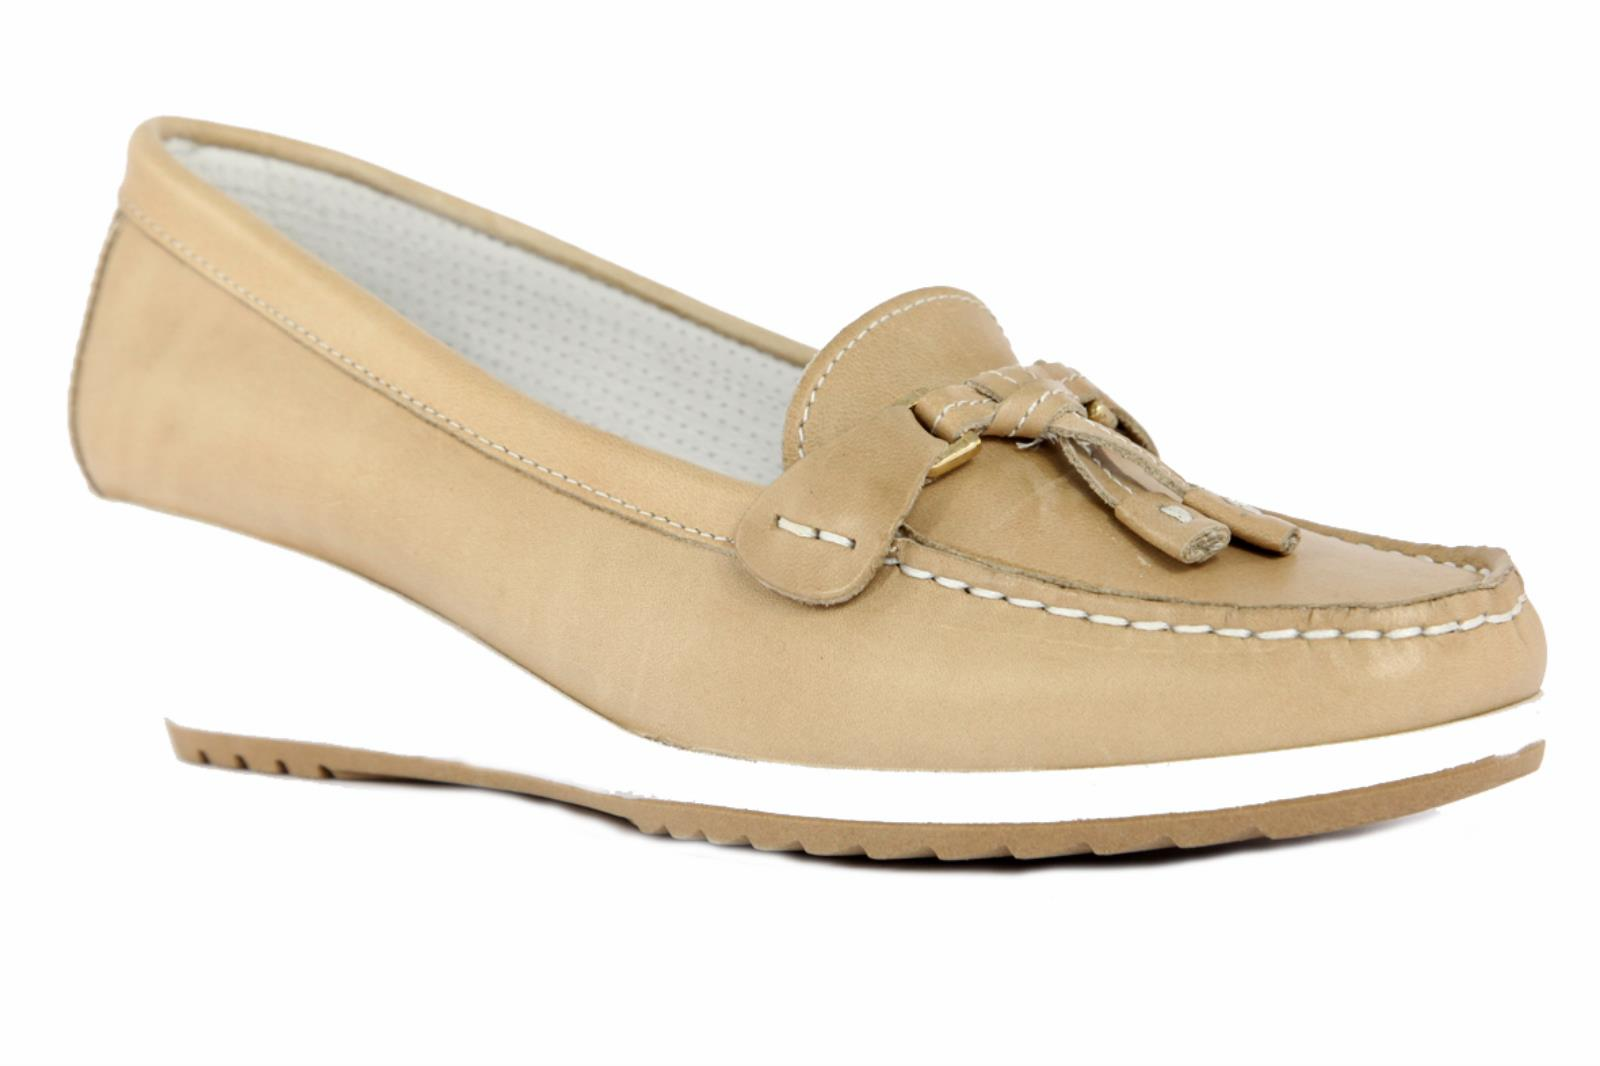 MOCASSINI-ENVAL-SOFT-PER-DONNA-IN-PELLE-DI-COLORE-BEIGE-7934200